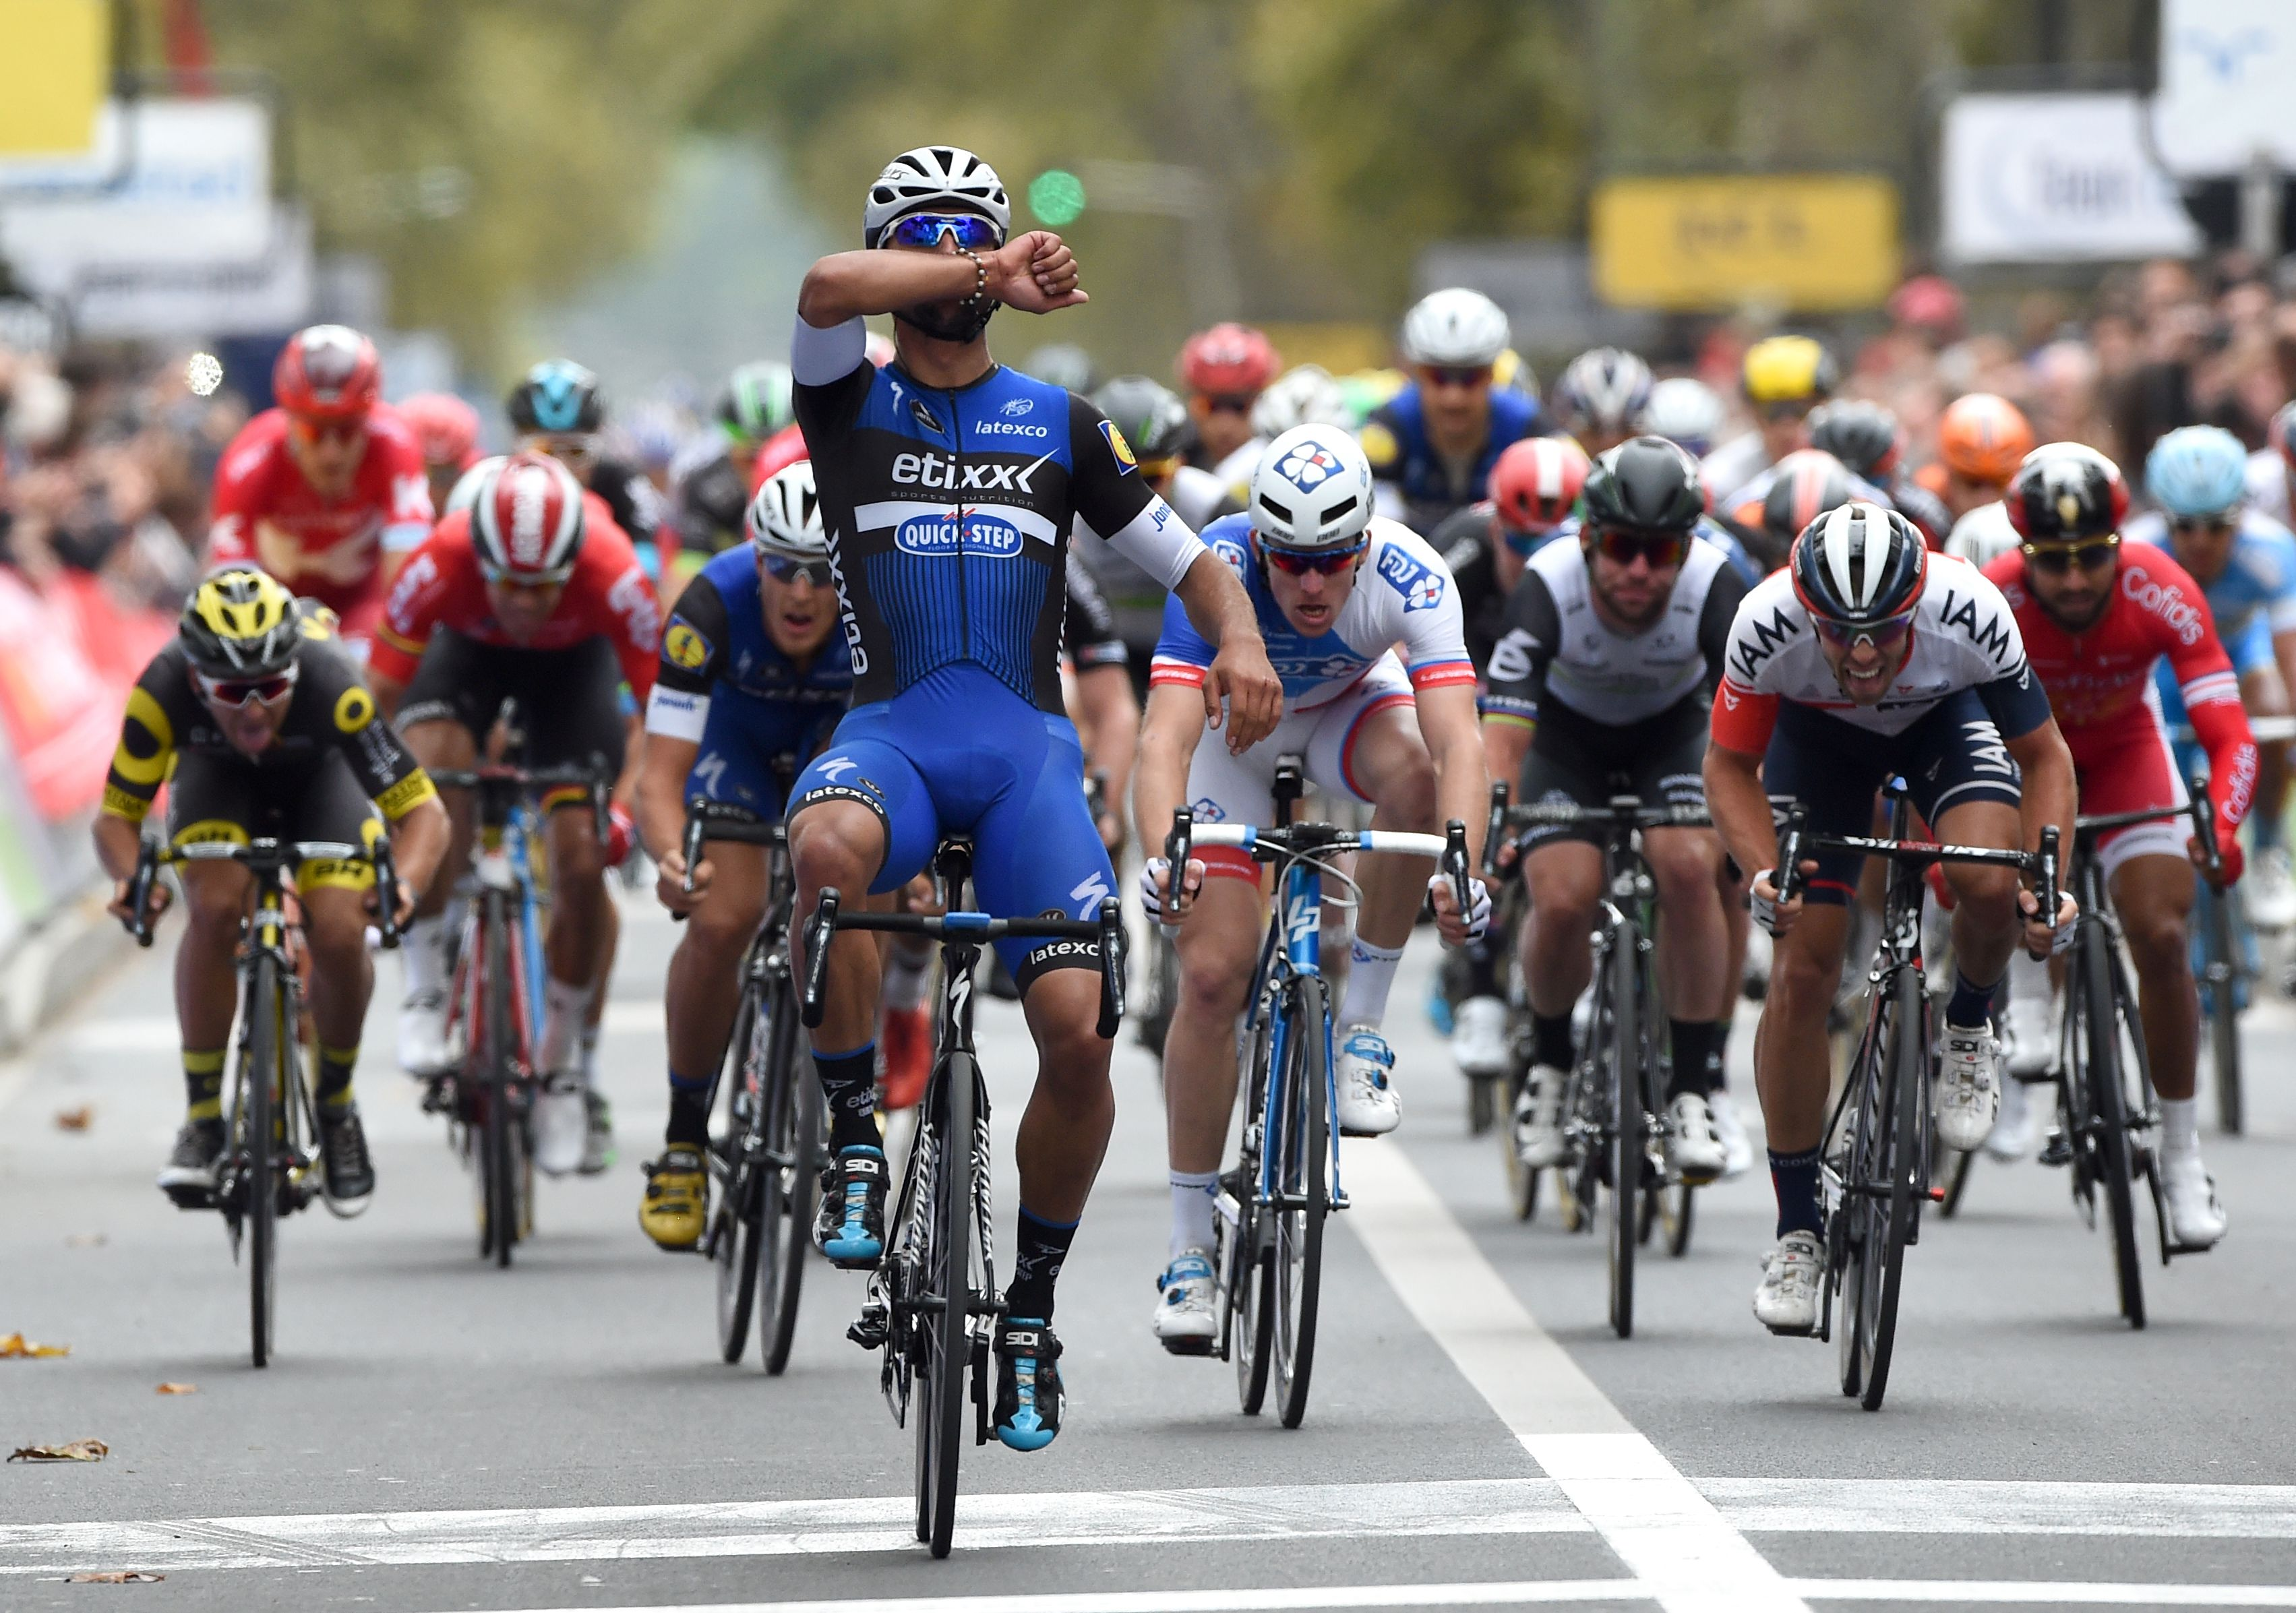 Cyclisme - Paris-Tours : Demare surpris par Gaviria